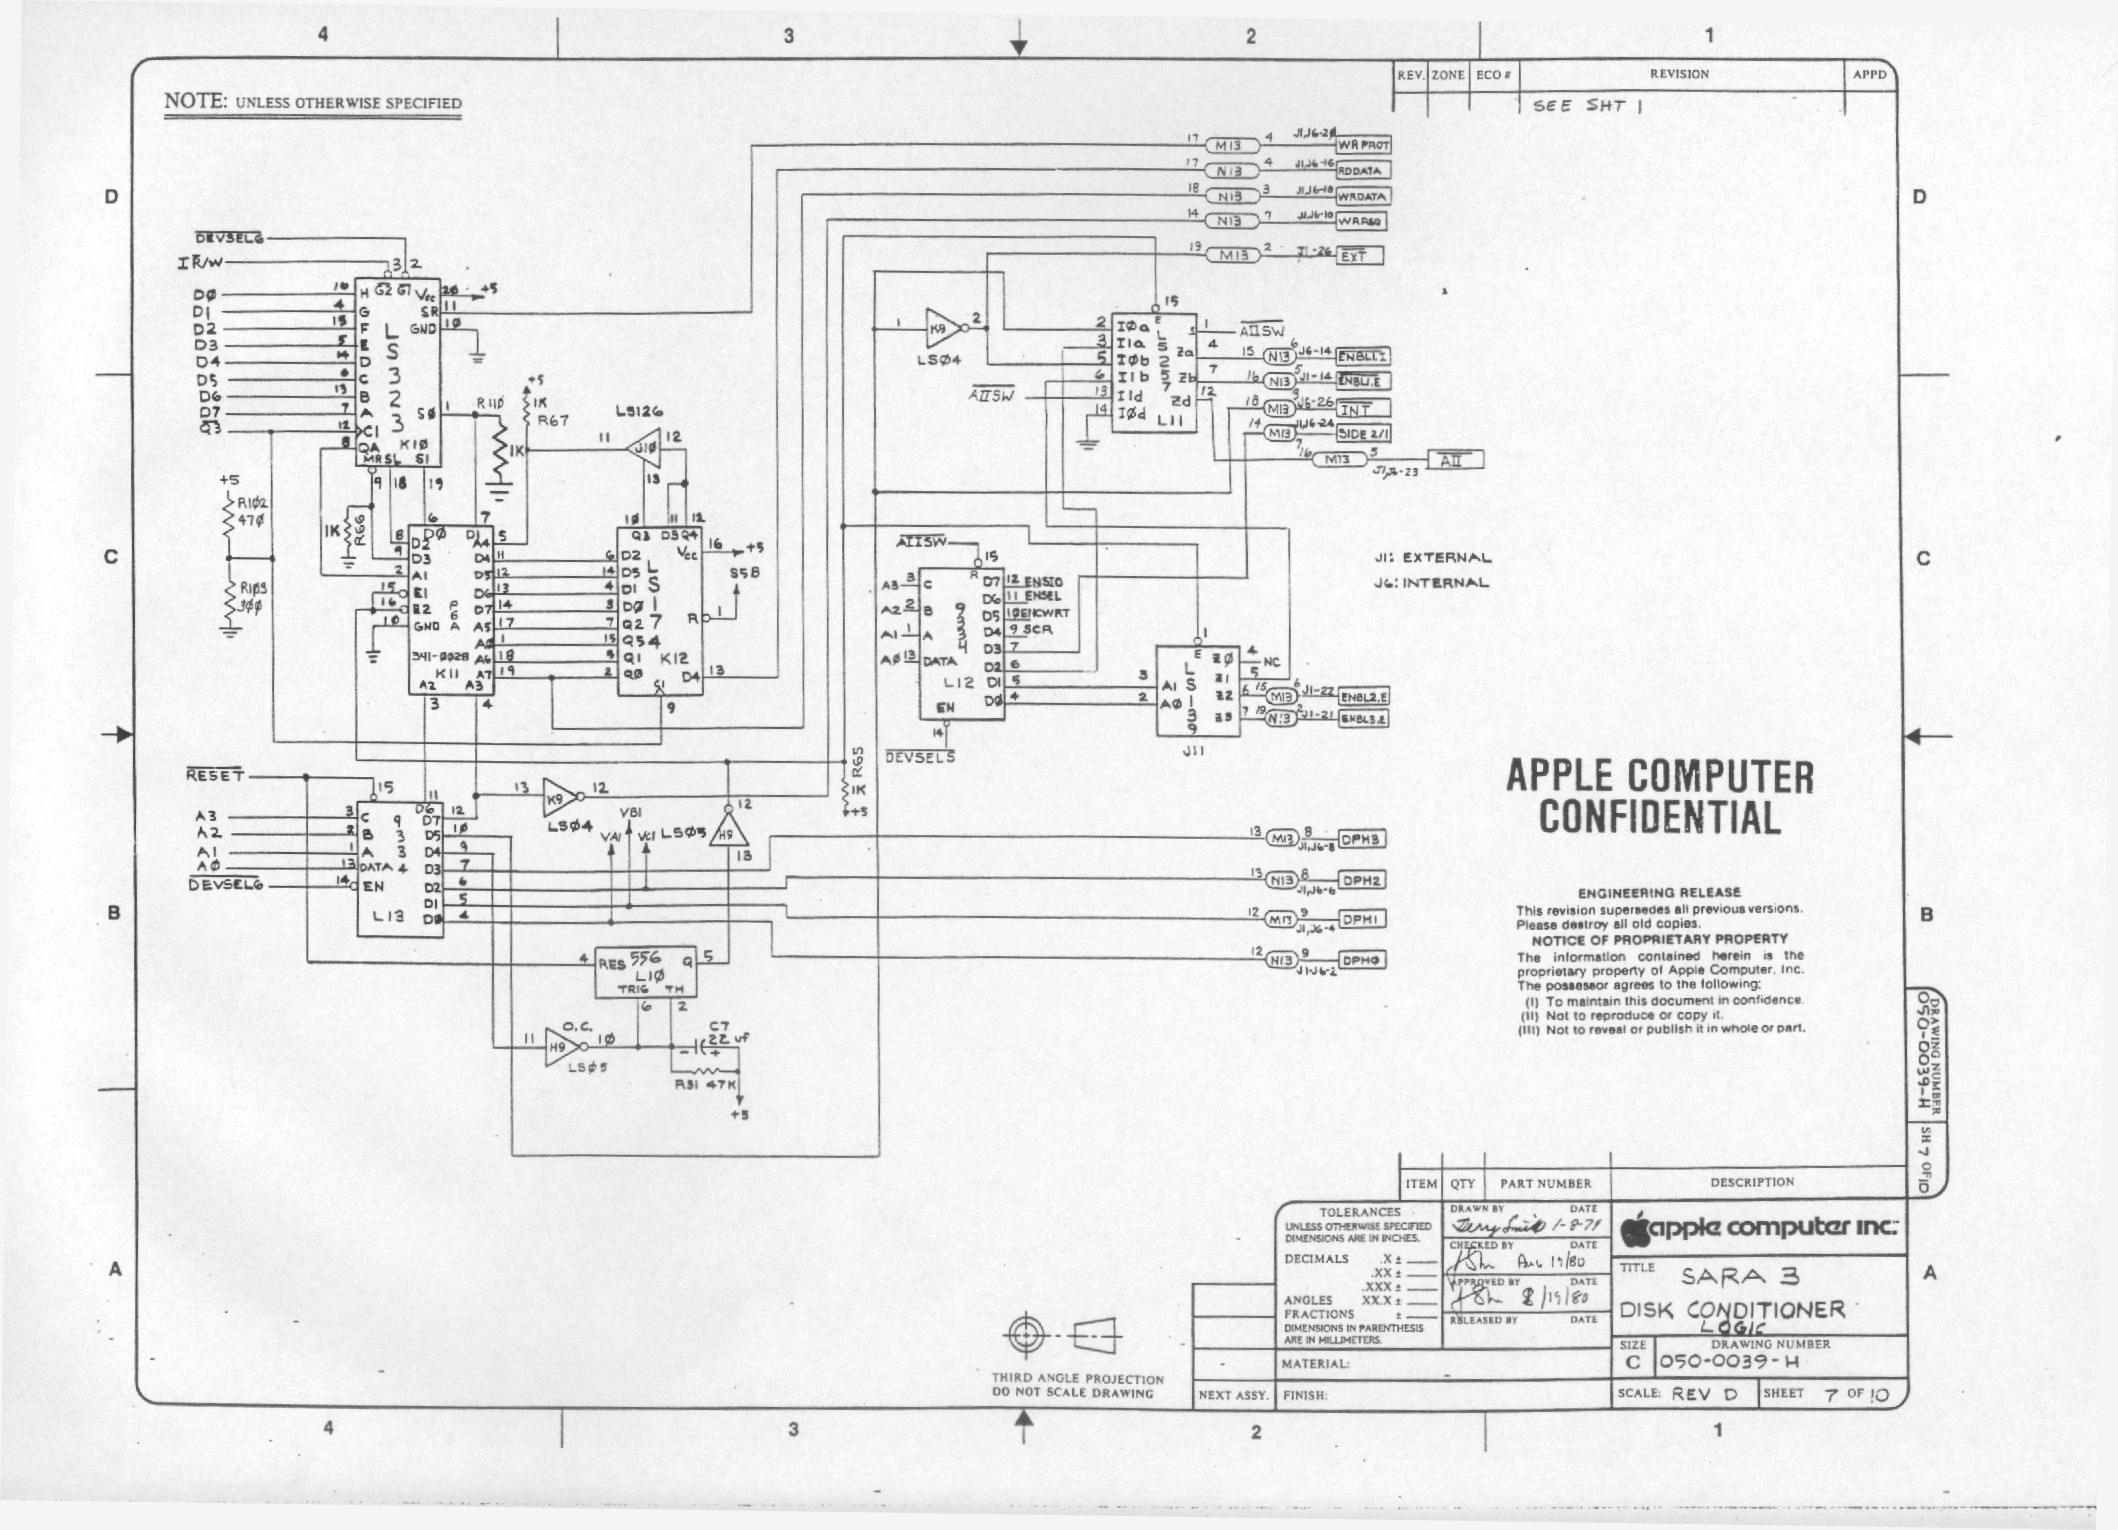 Disk Controller Logic apple 2 schematic readingrat net wiring diagram for apple tv at crackthecode.co